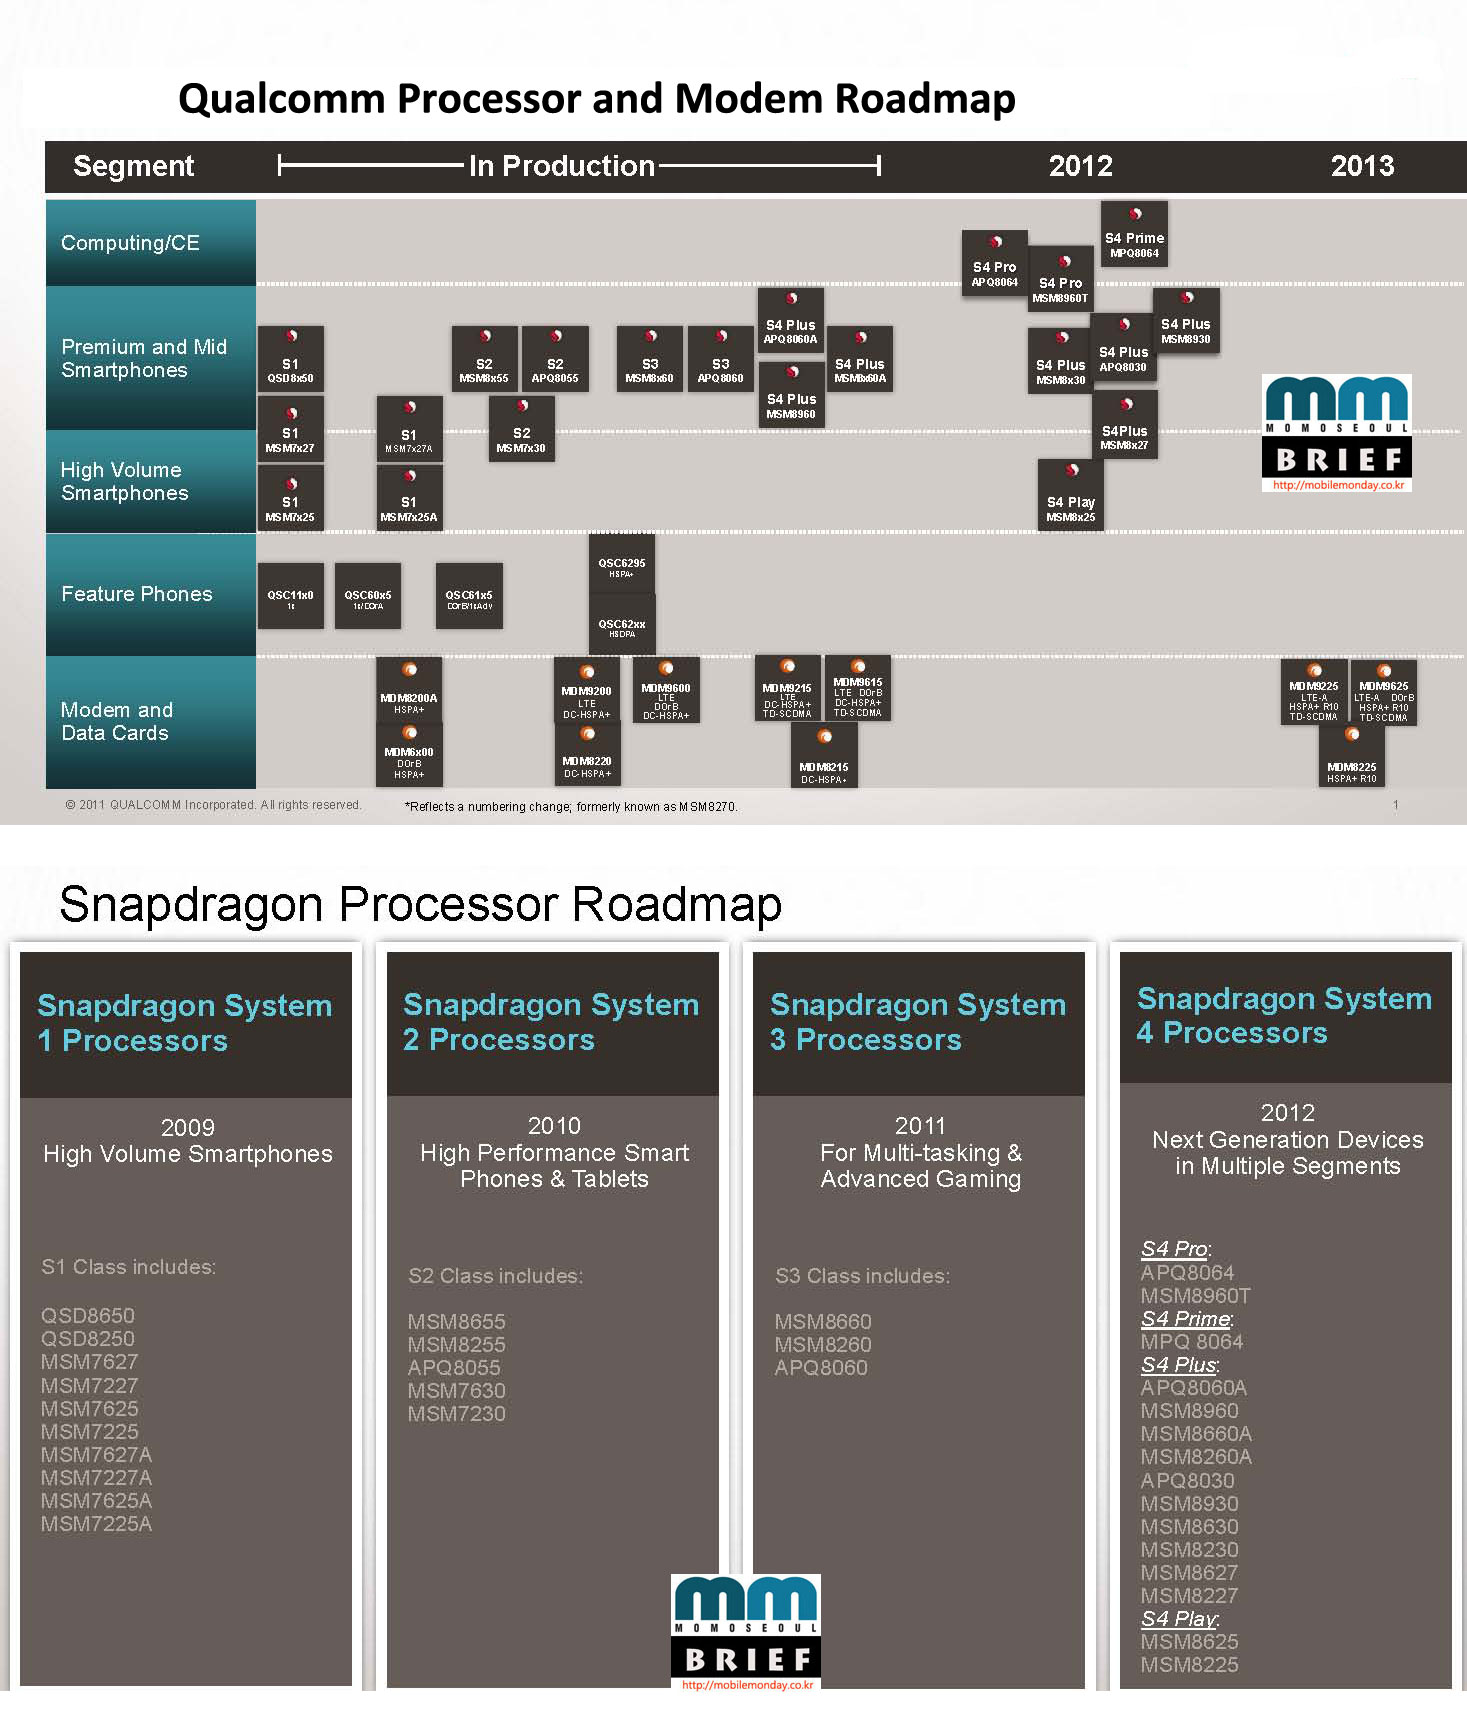 MoMo Seoul Chart: Qualcomm Snapdragon Roadmap